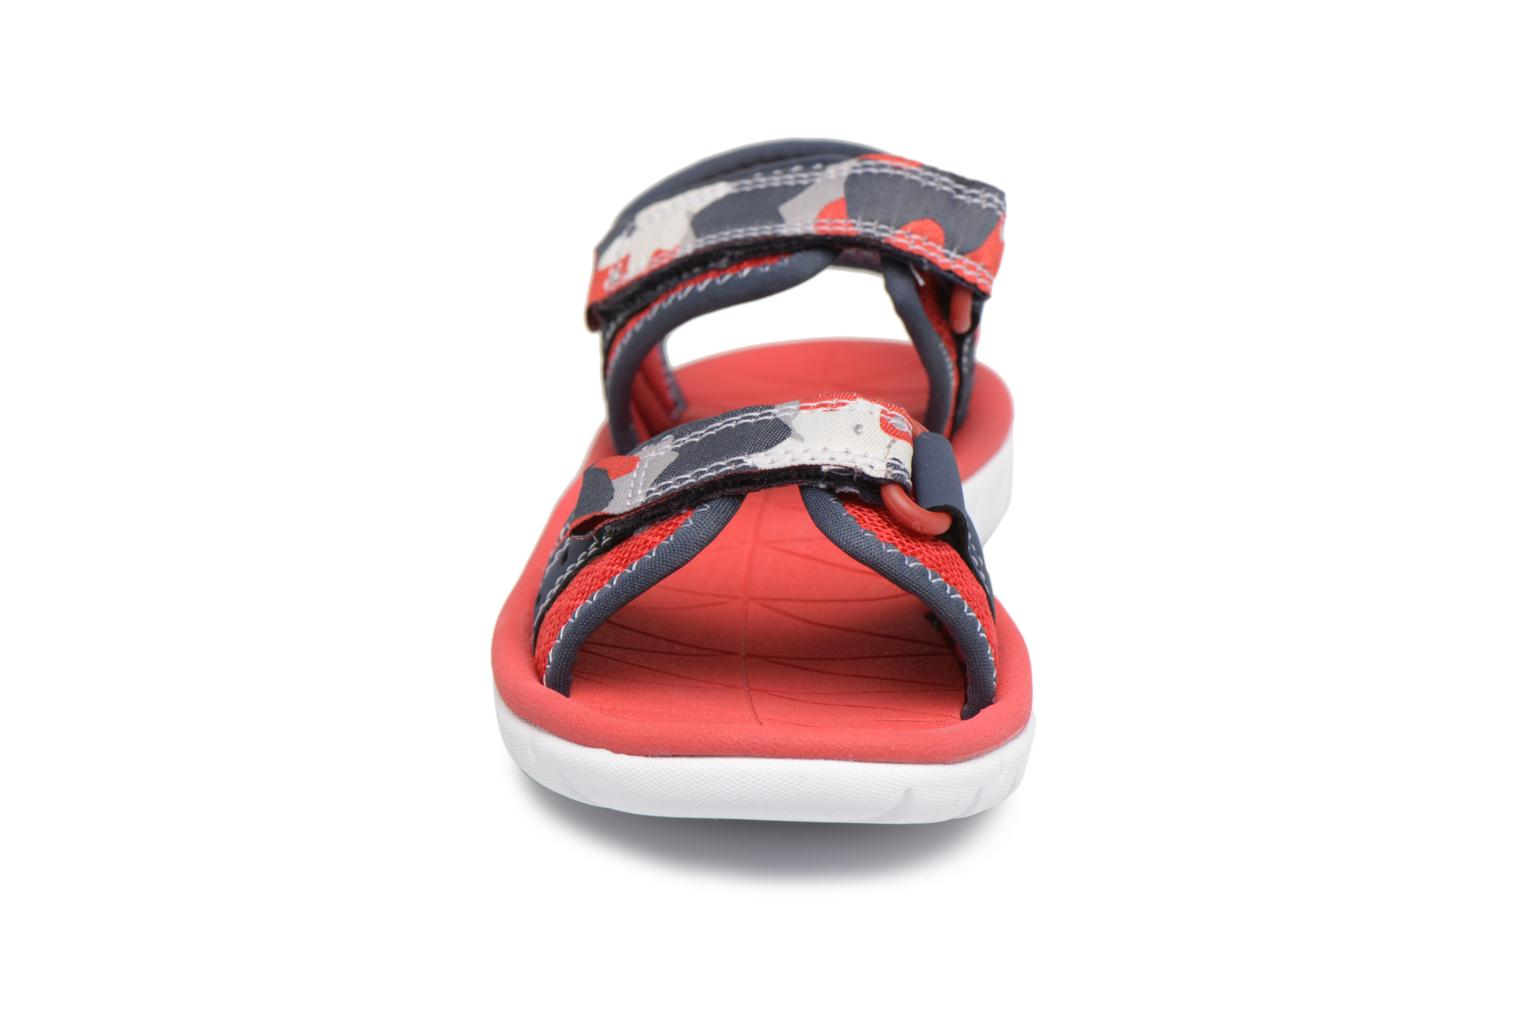 Surfing Combi Surfing Surfing Clarks Red Red Combi Clarks Coast Coast Clarks S7OxqgwOT